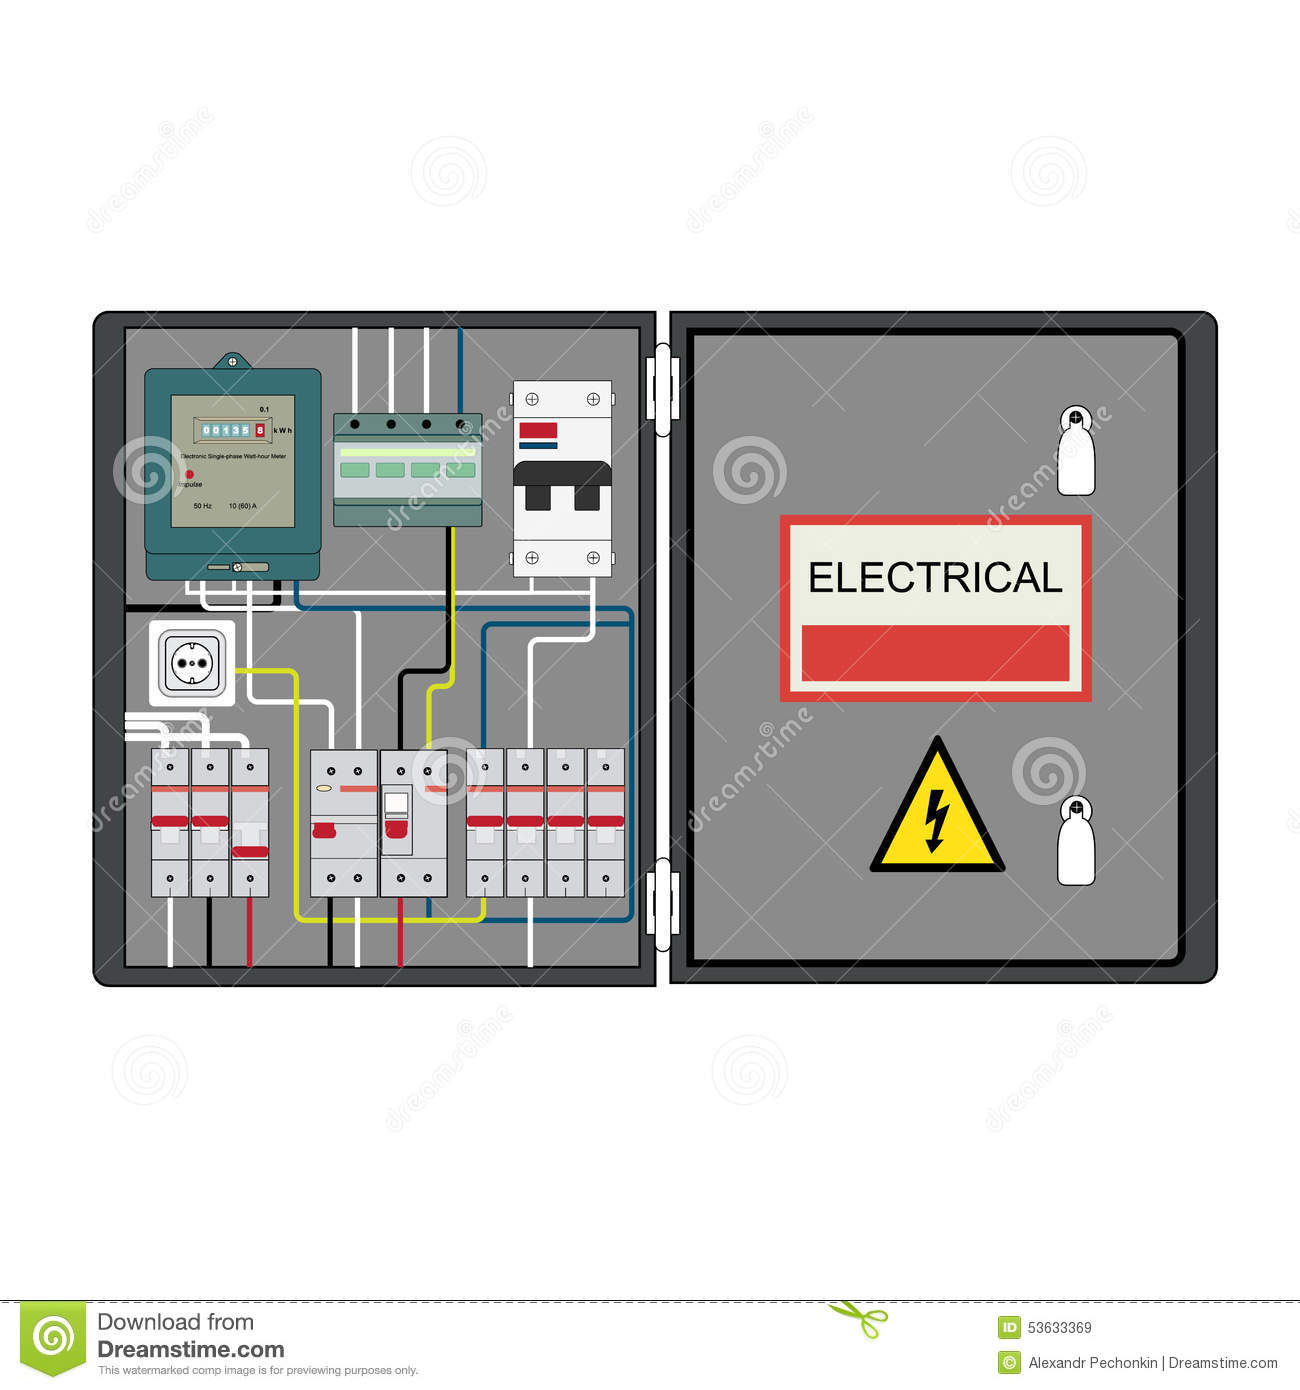 Electrical panel stock vector. Illustration of home, electrical ...